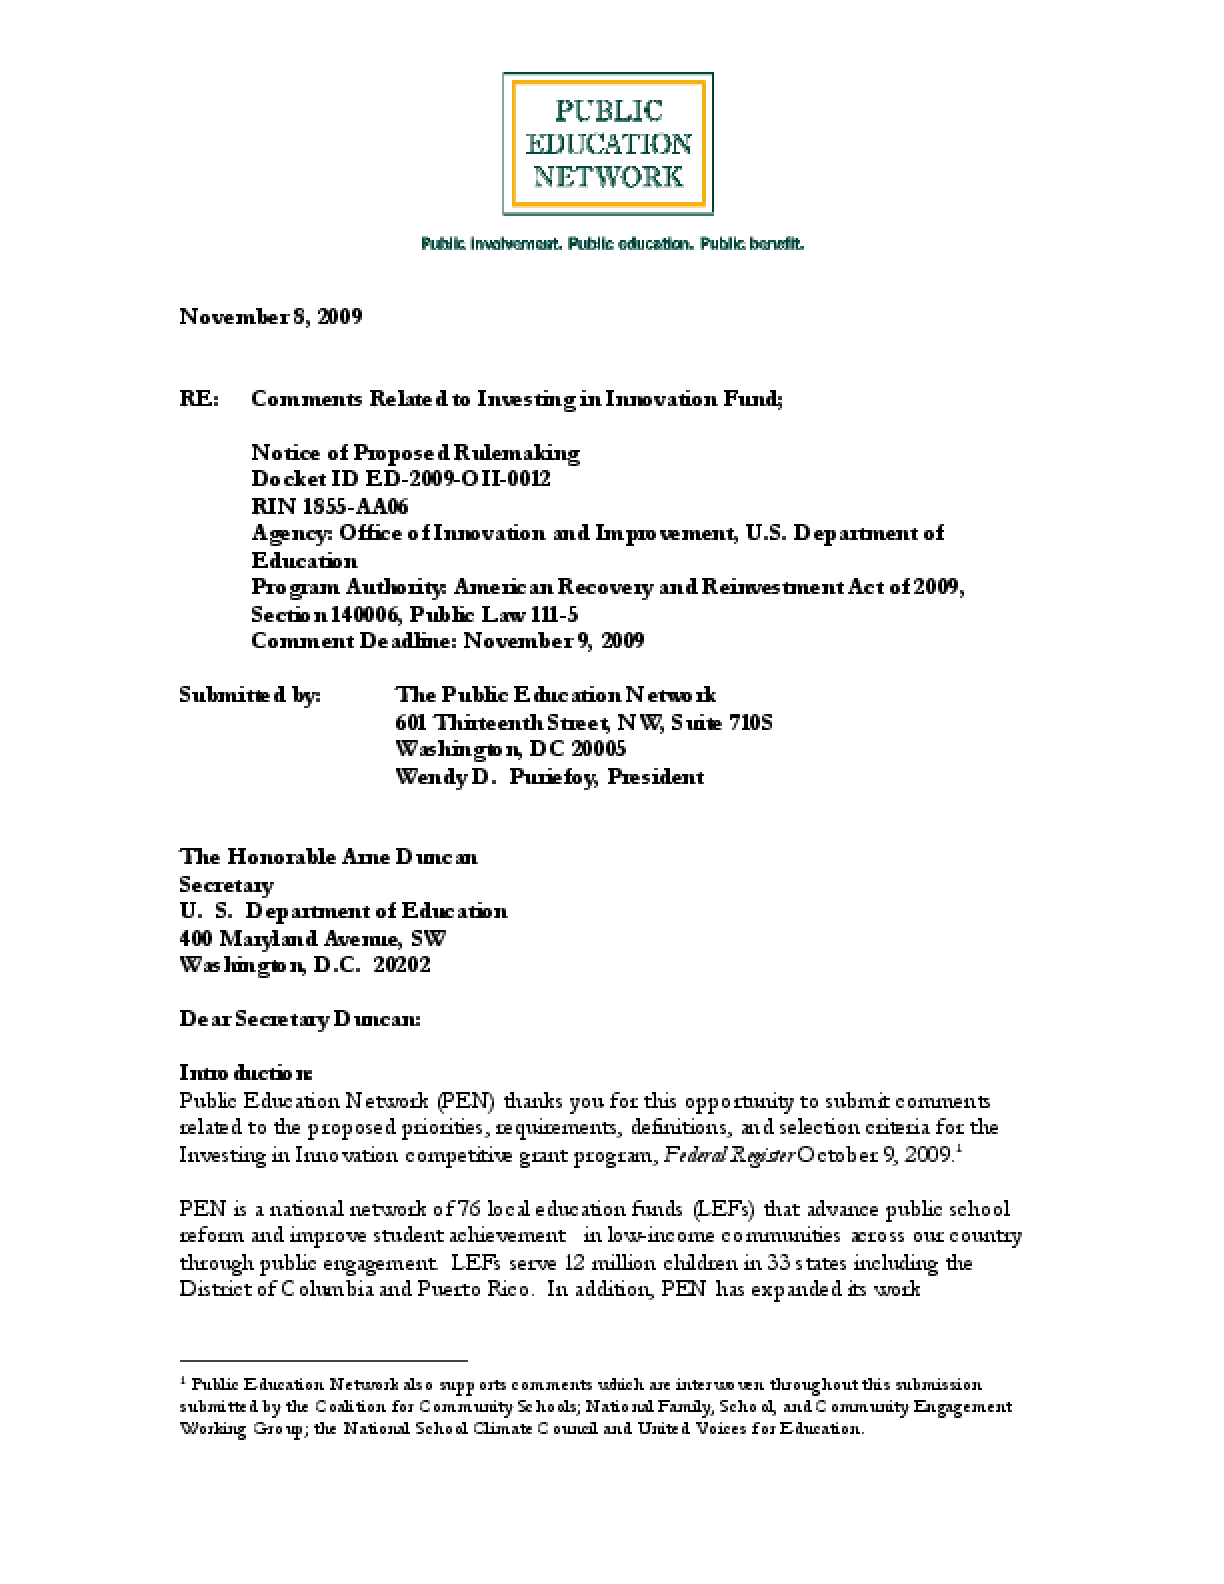 Comments Made to the Office of Innovation and Improvement, U.S. Department of Education, Related to Investing in Innovation Fund